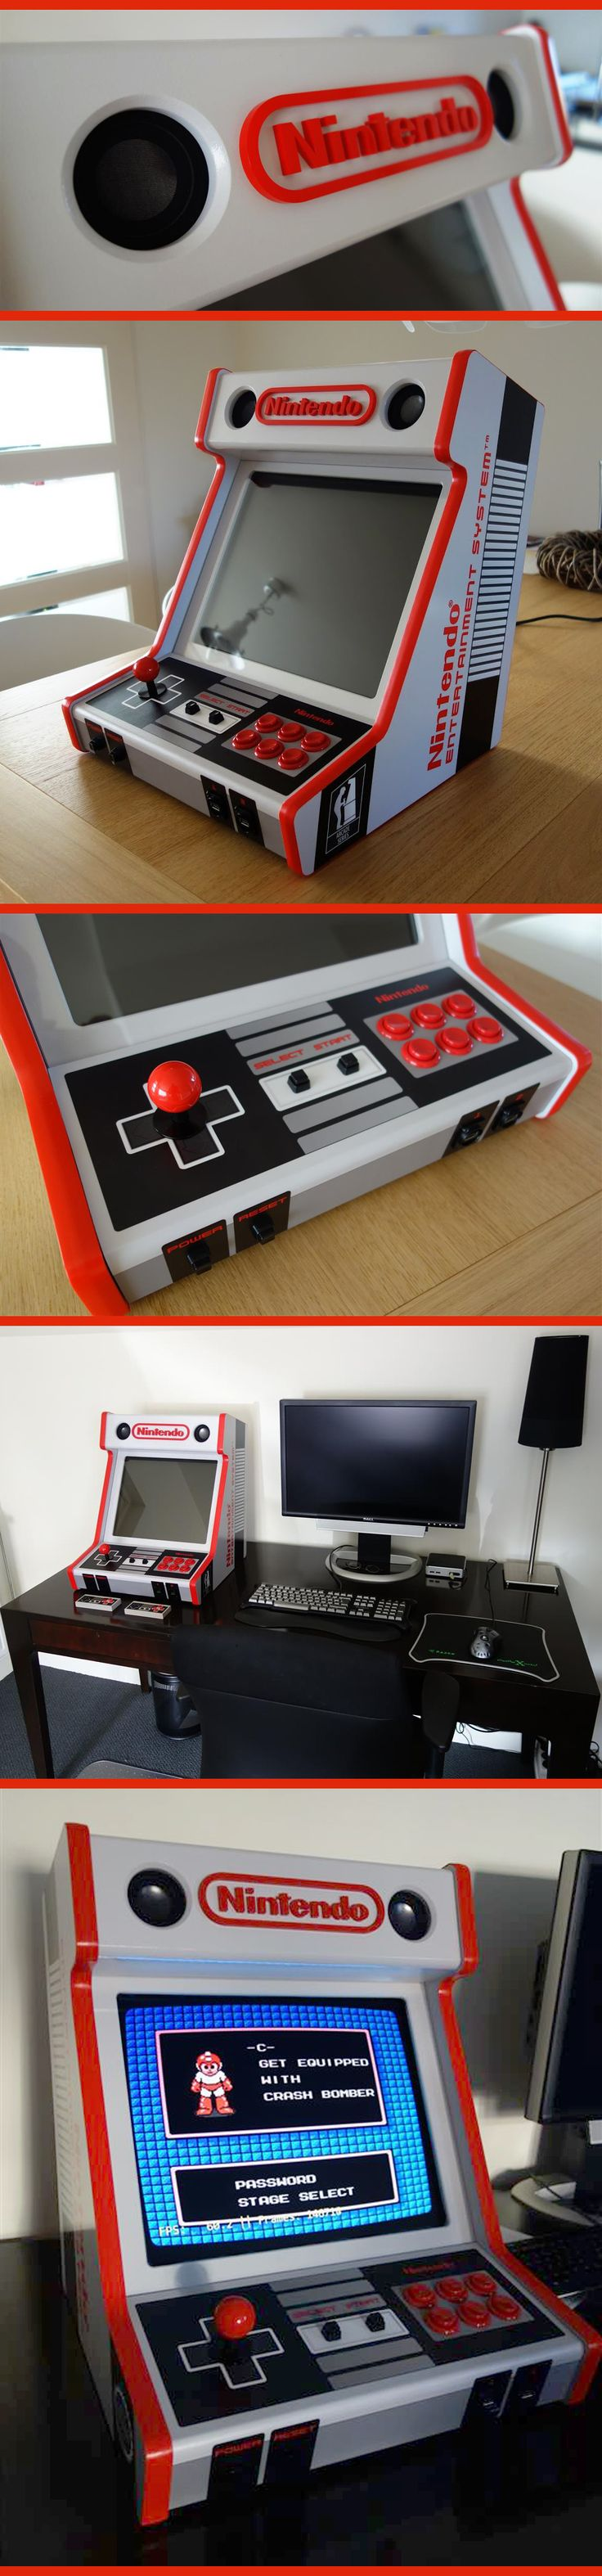 Custom Made NES Bartop Arcade Cabinet, super nostalgic retro Nintendo style via ArcadeControls forums user edekoning                                                                                                                                                      Mais